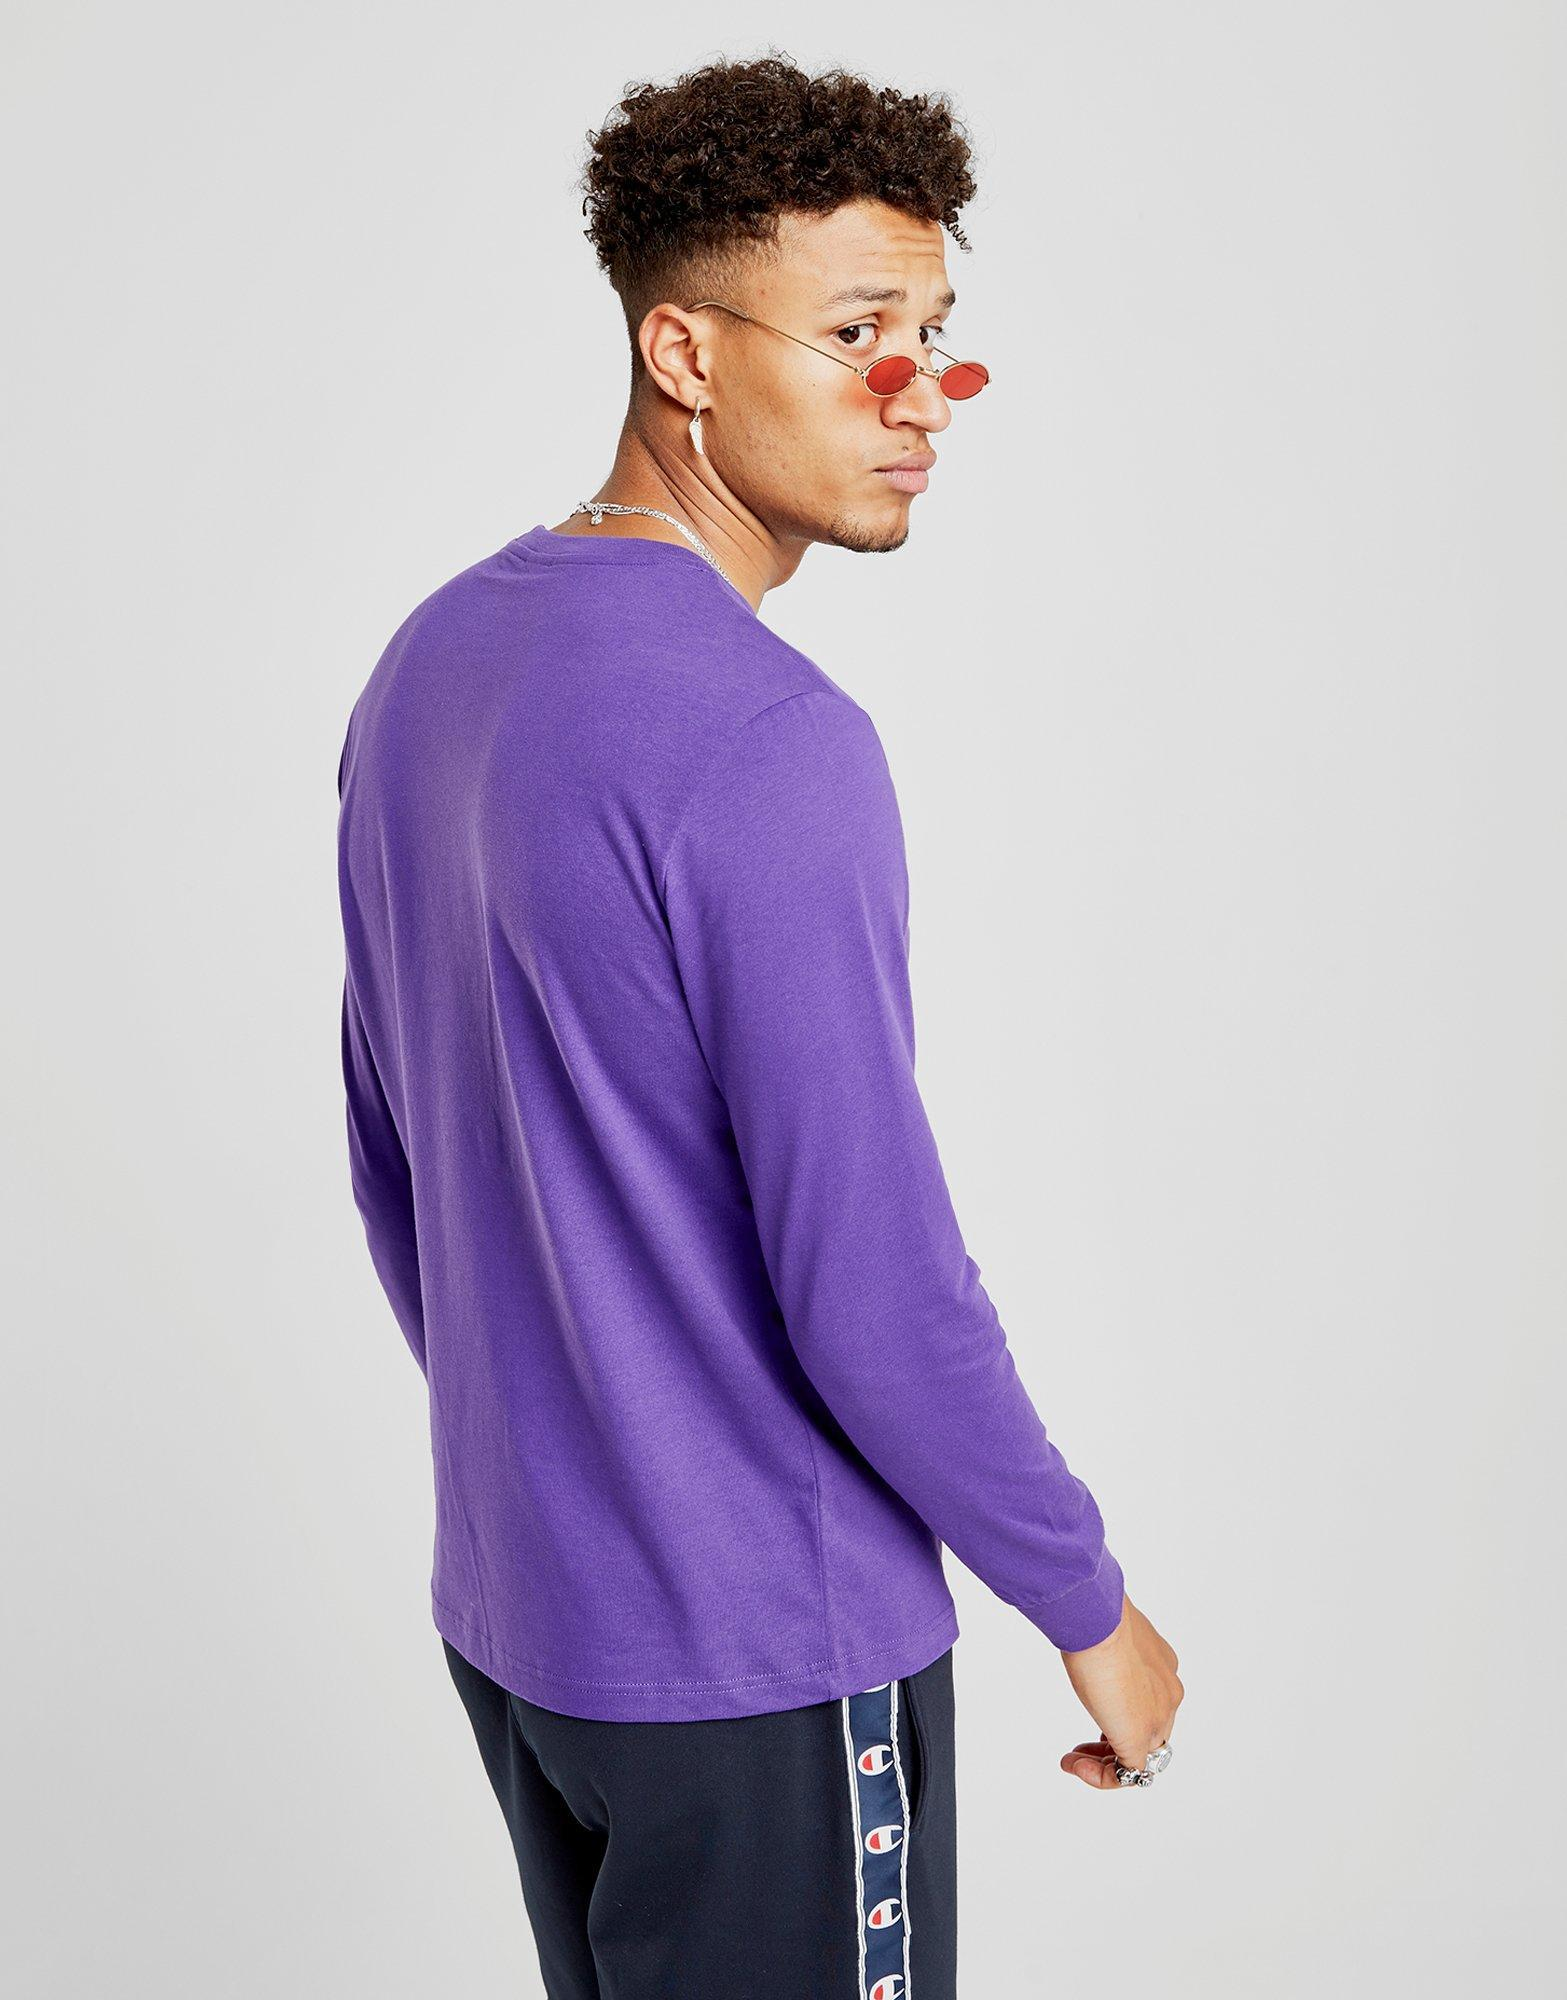 ae742065 Champion Repeat Long Sleeve T-shirt in Purple for Men - Lyst